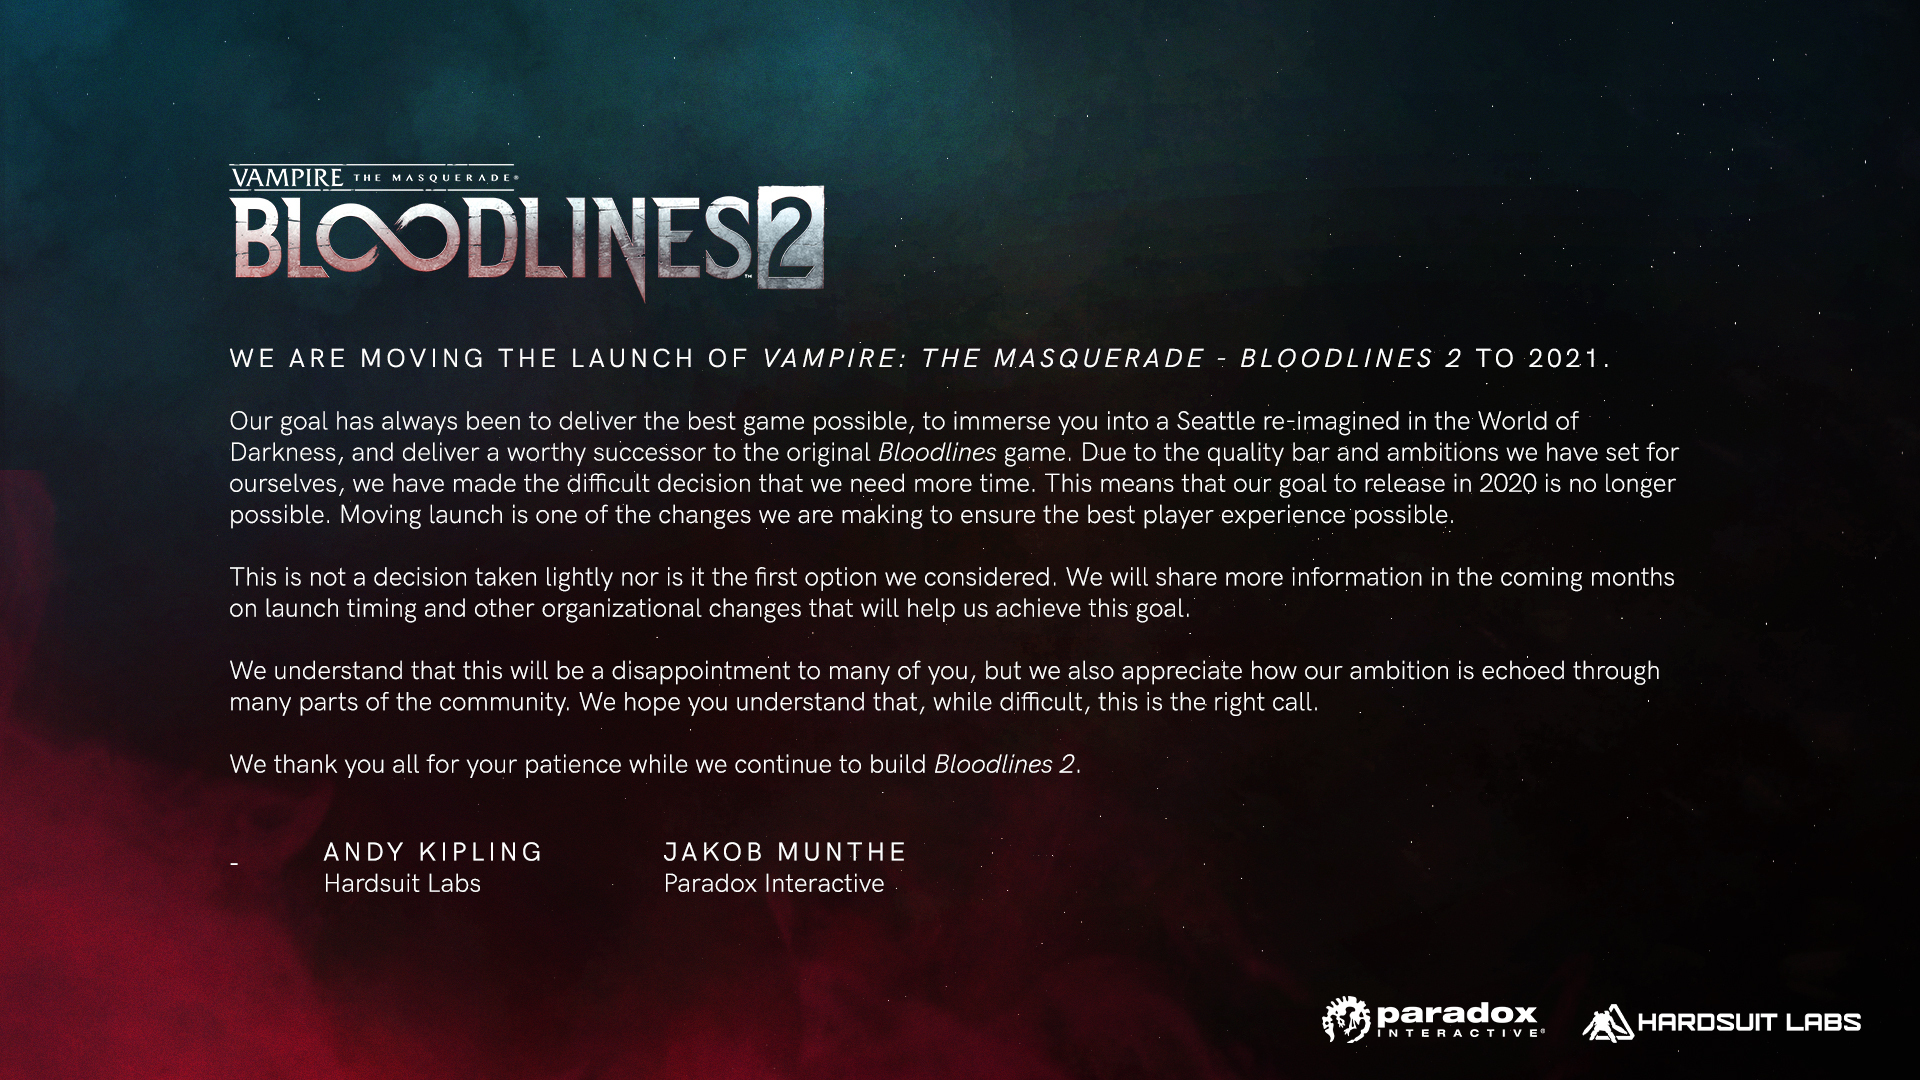 Hardsuit Labs and Paradox's statement on Bloodlines 2's delay.